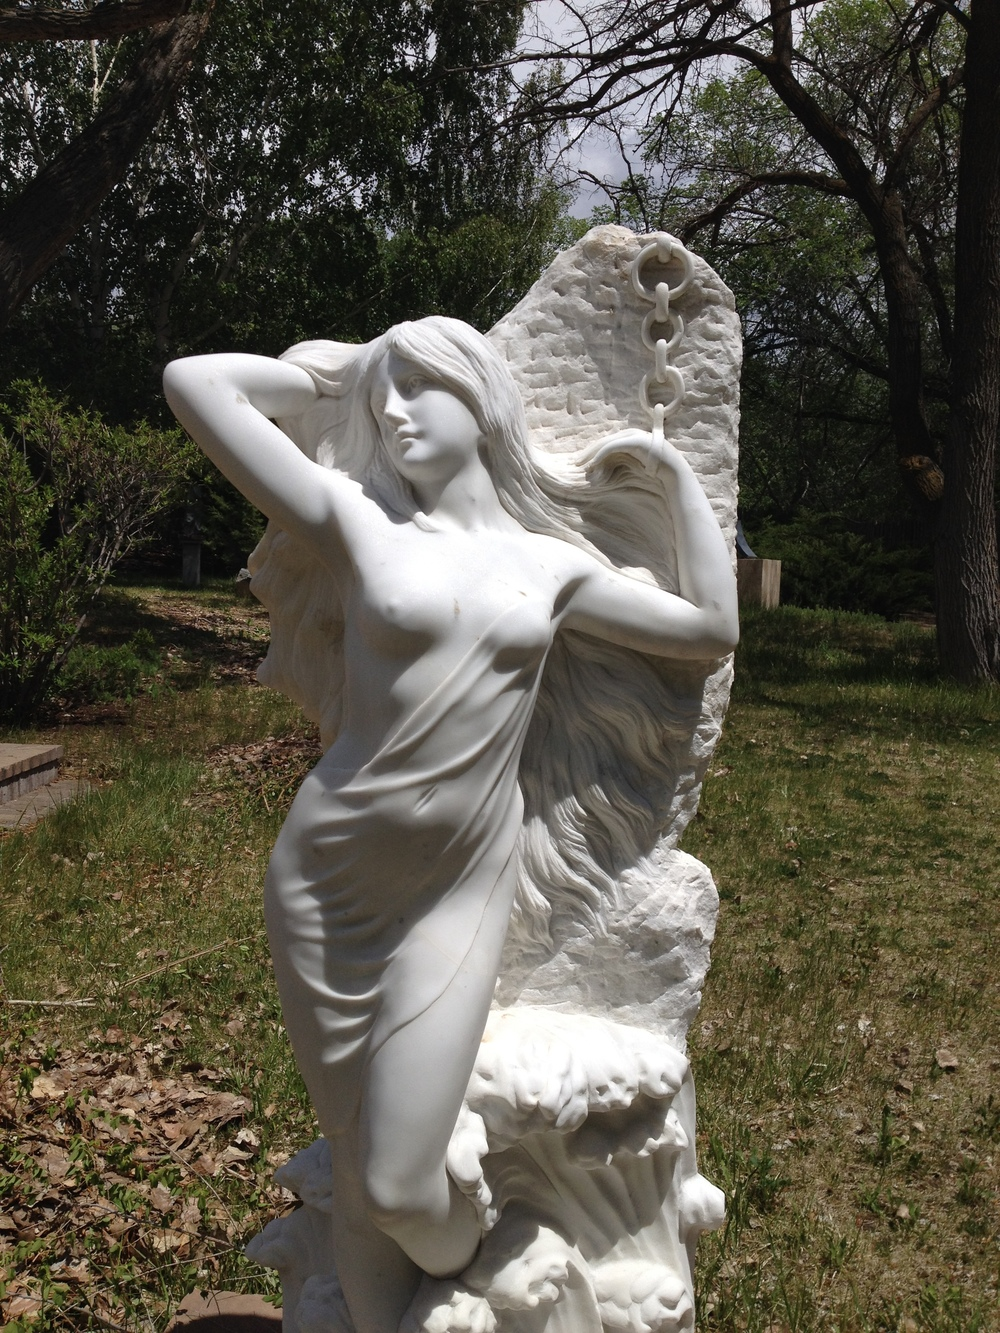 Photo - statue of Andromeda at Glenn Green Galleries, Tesuque, NM http://www.glenngreengalleries.com